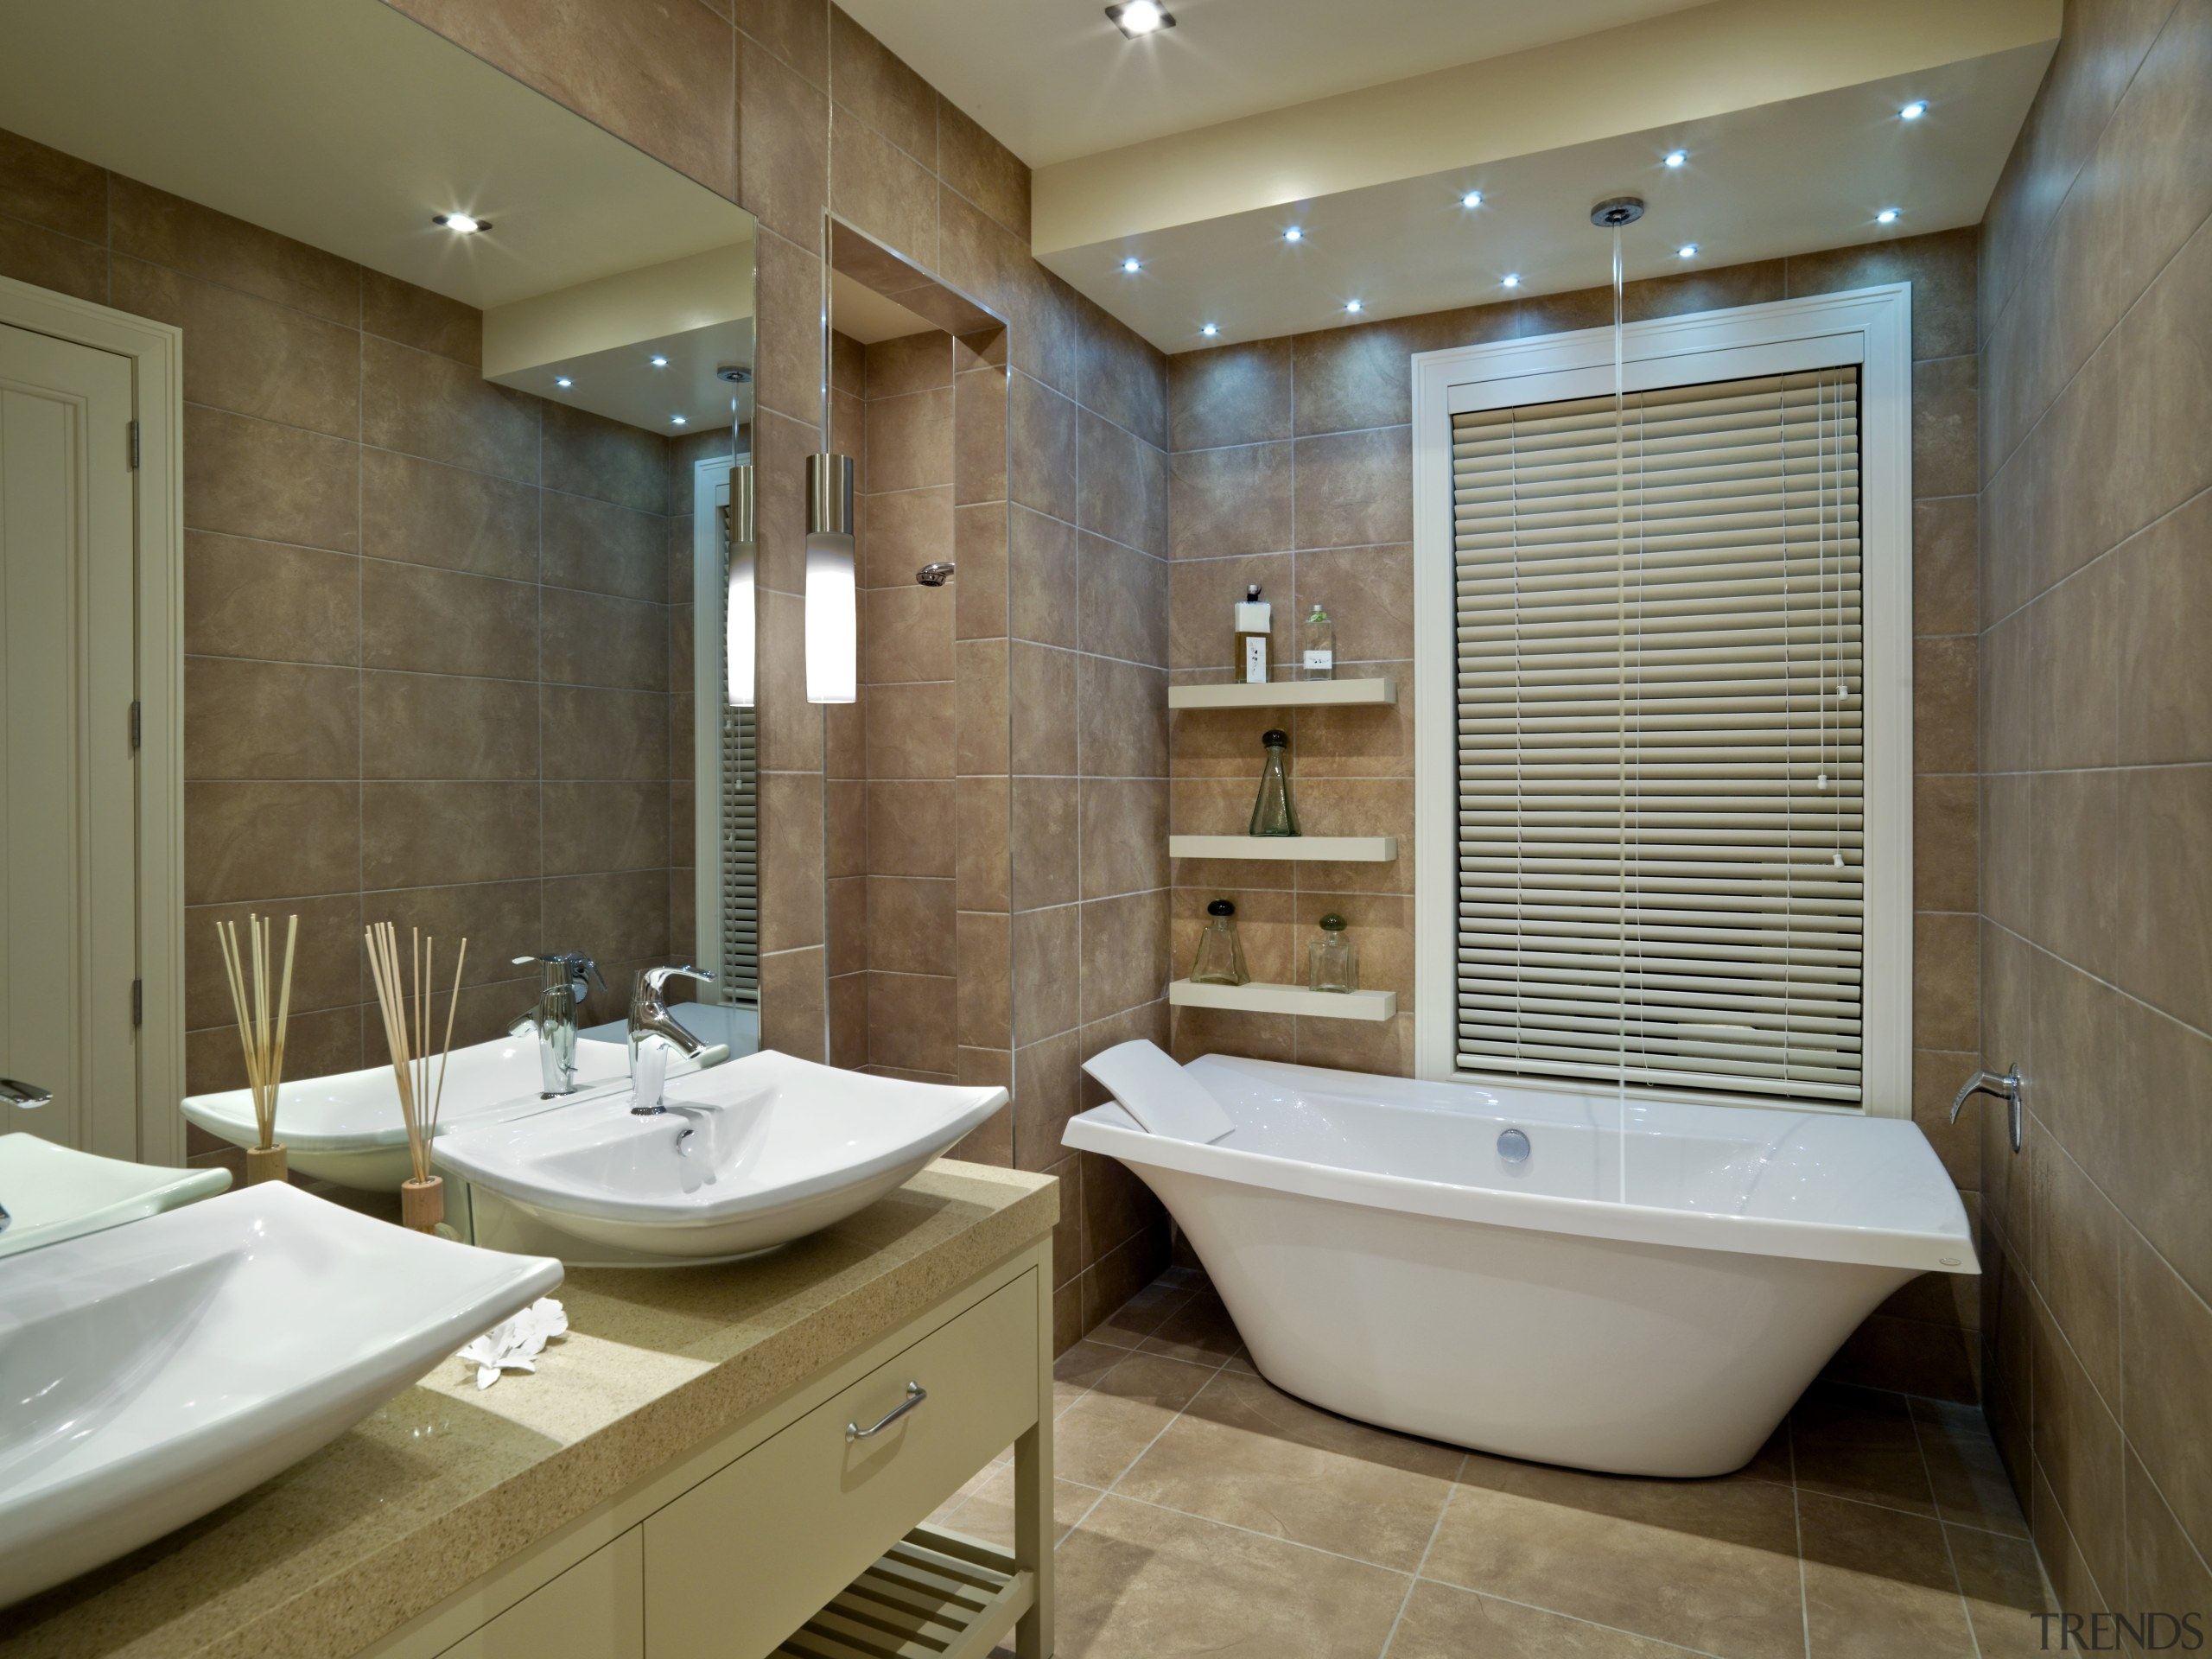 A view of some bathroomware from Kholer. - bathroom, estate, home, interior design, room, brown, gray